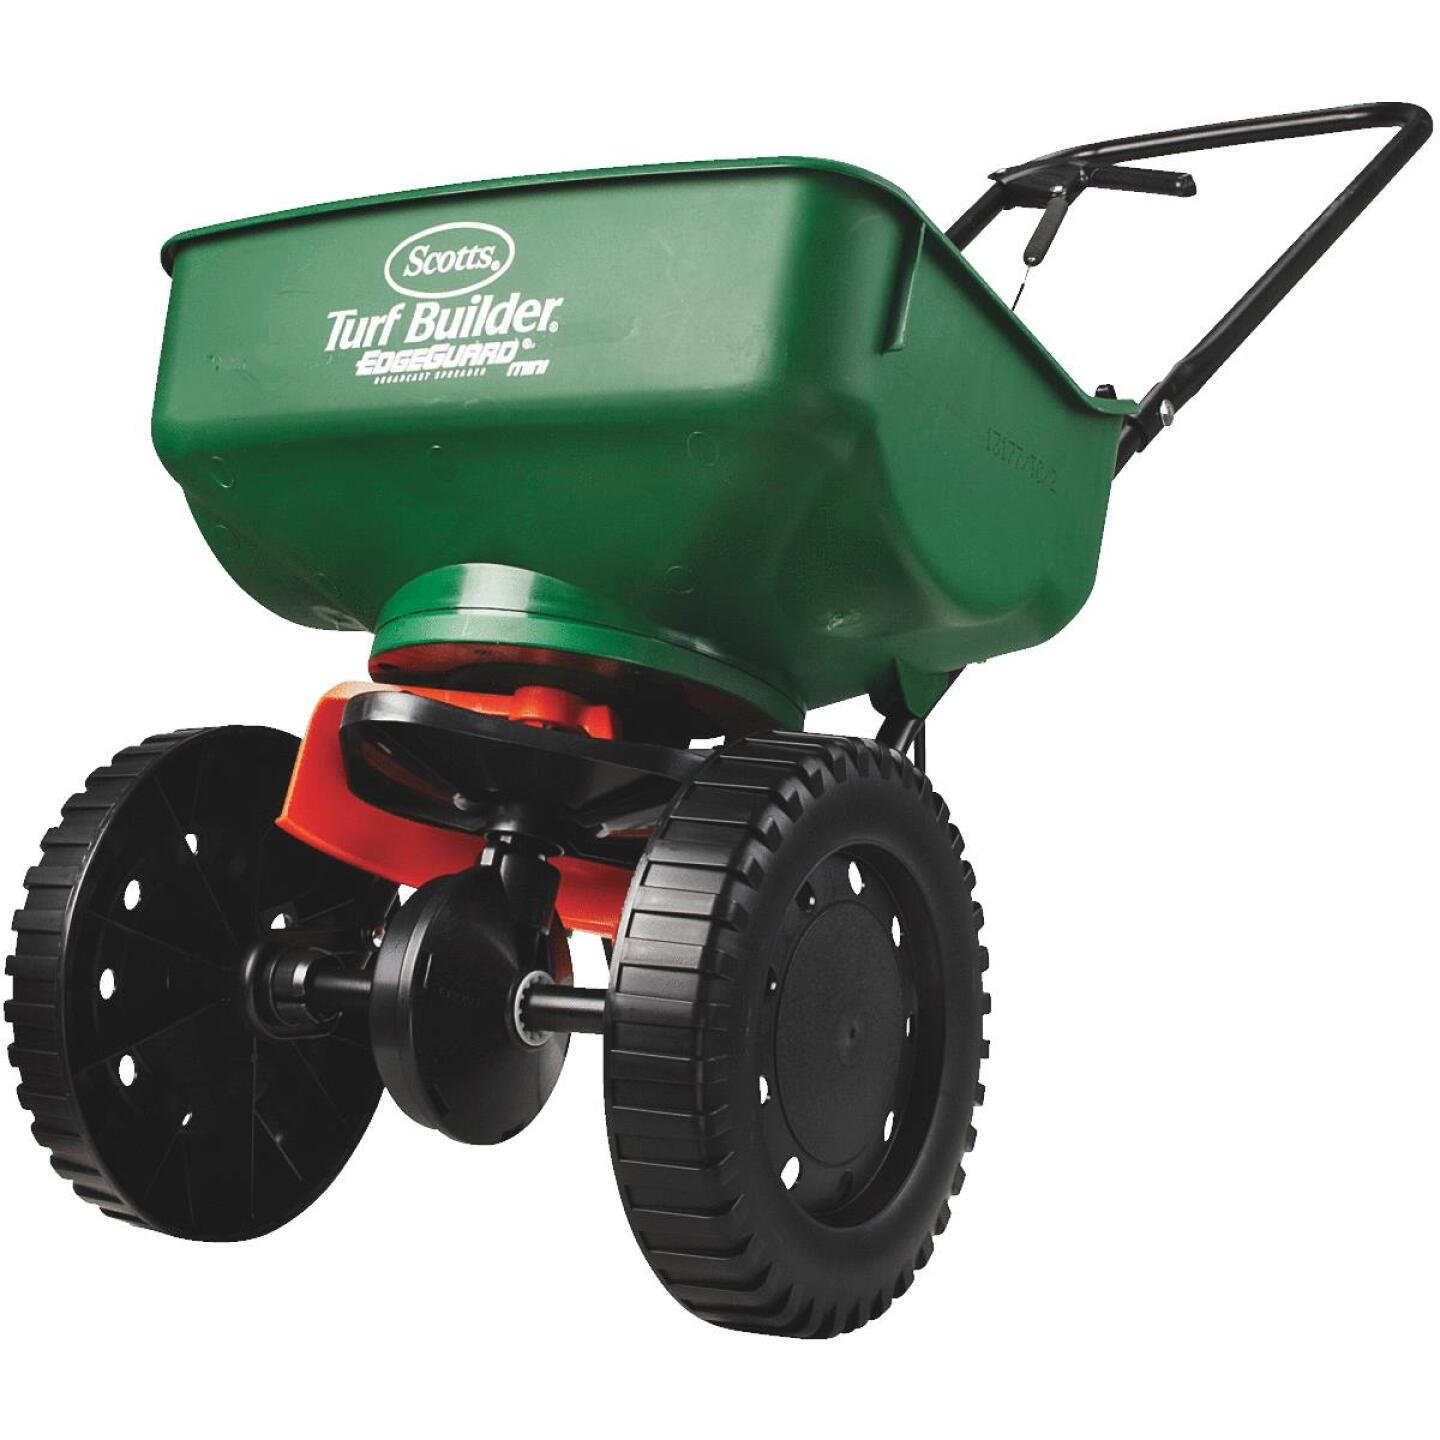 Scotts Turf Builder EdgeGuard Mini Broadcast Fertilizer Spreader Image 2